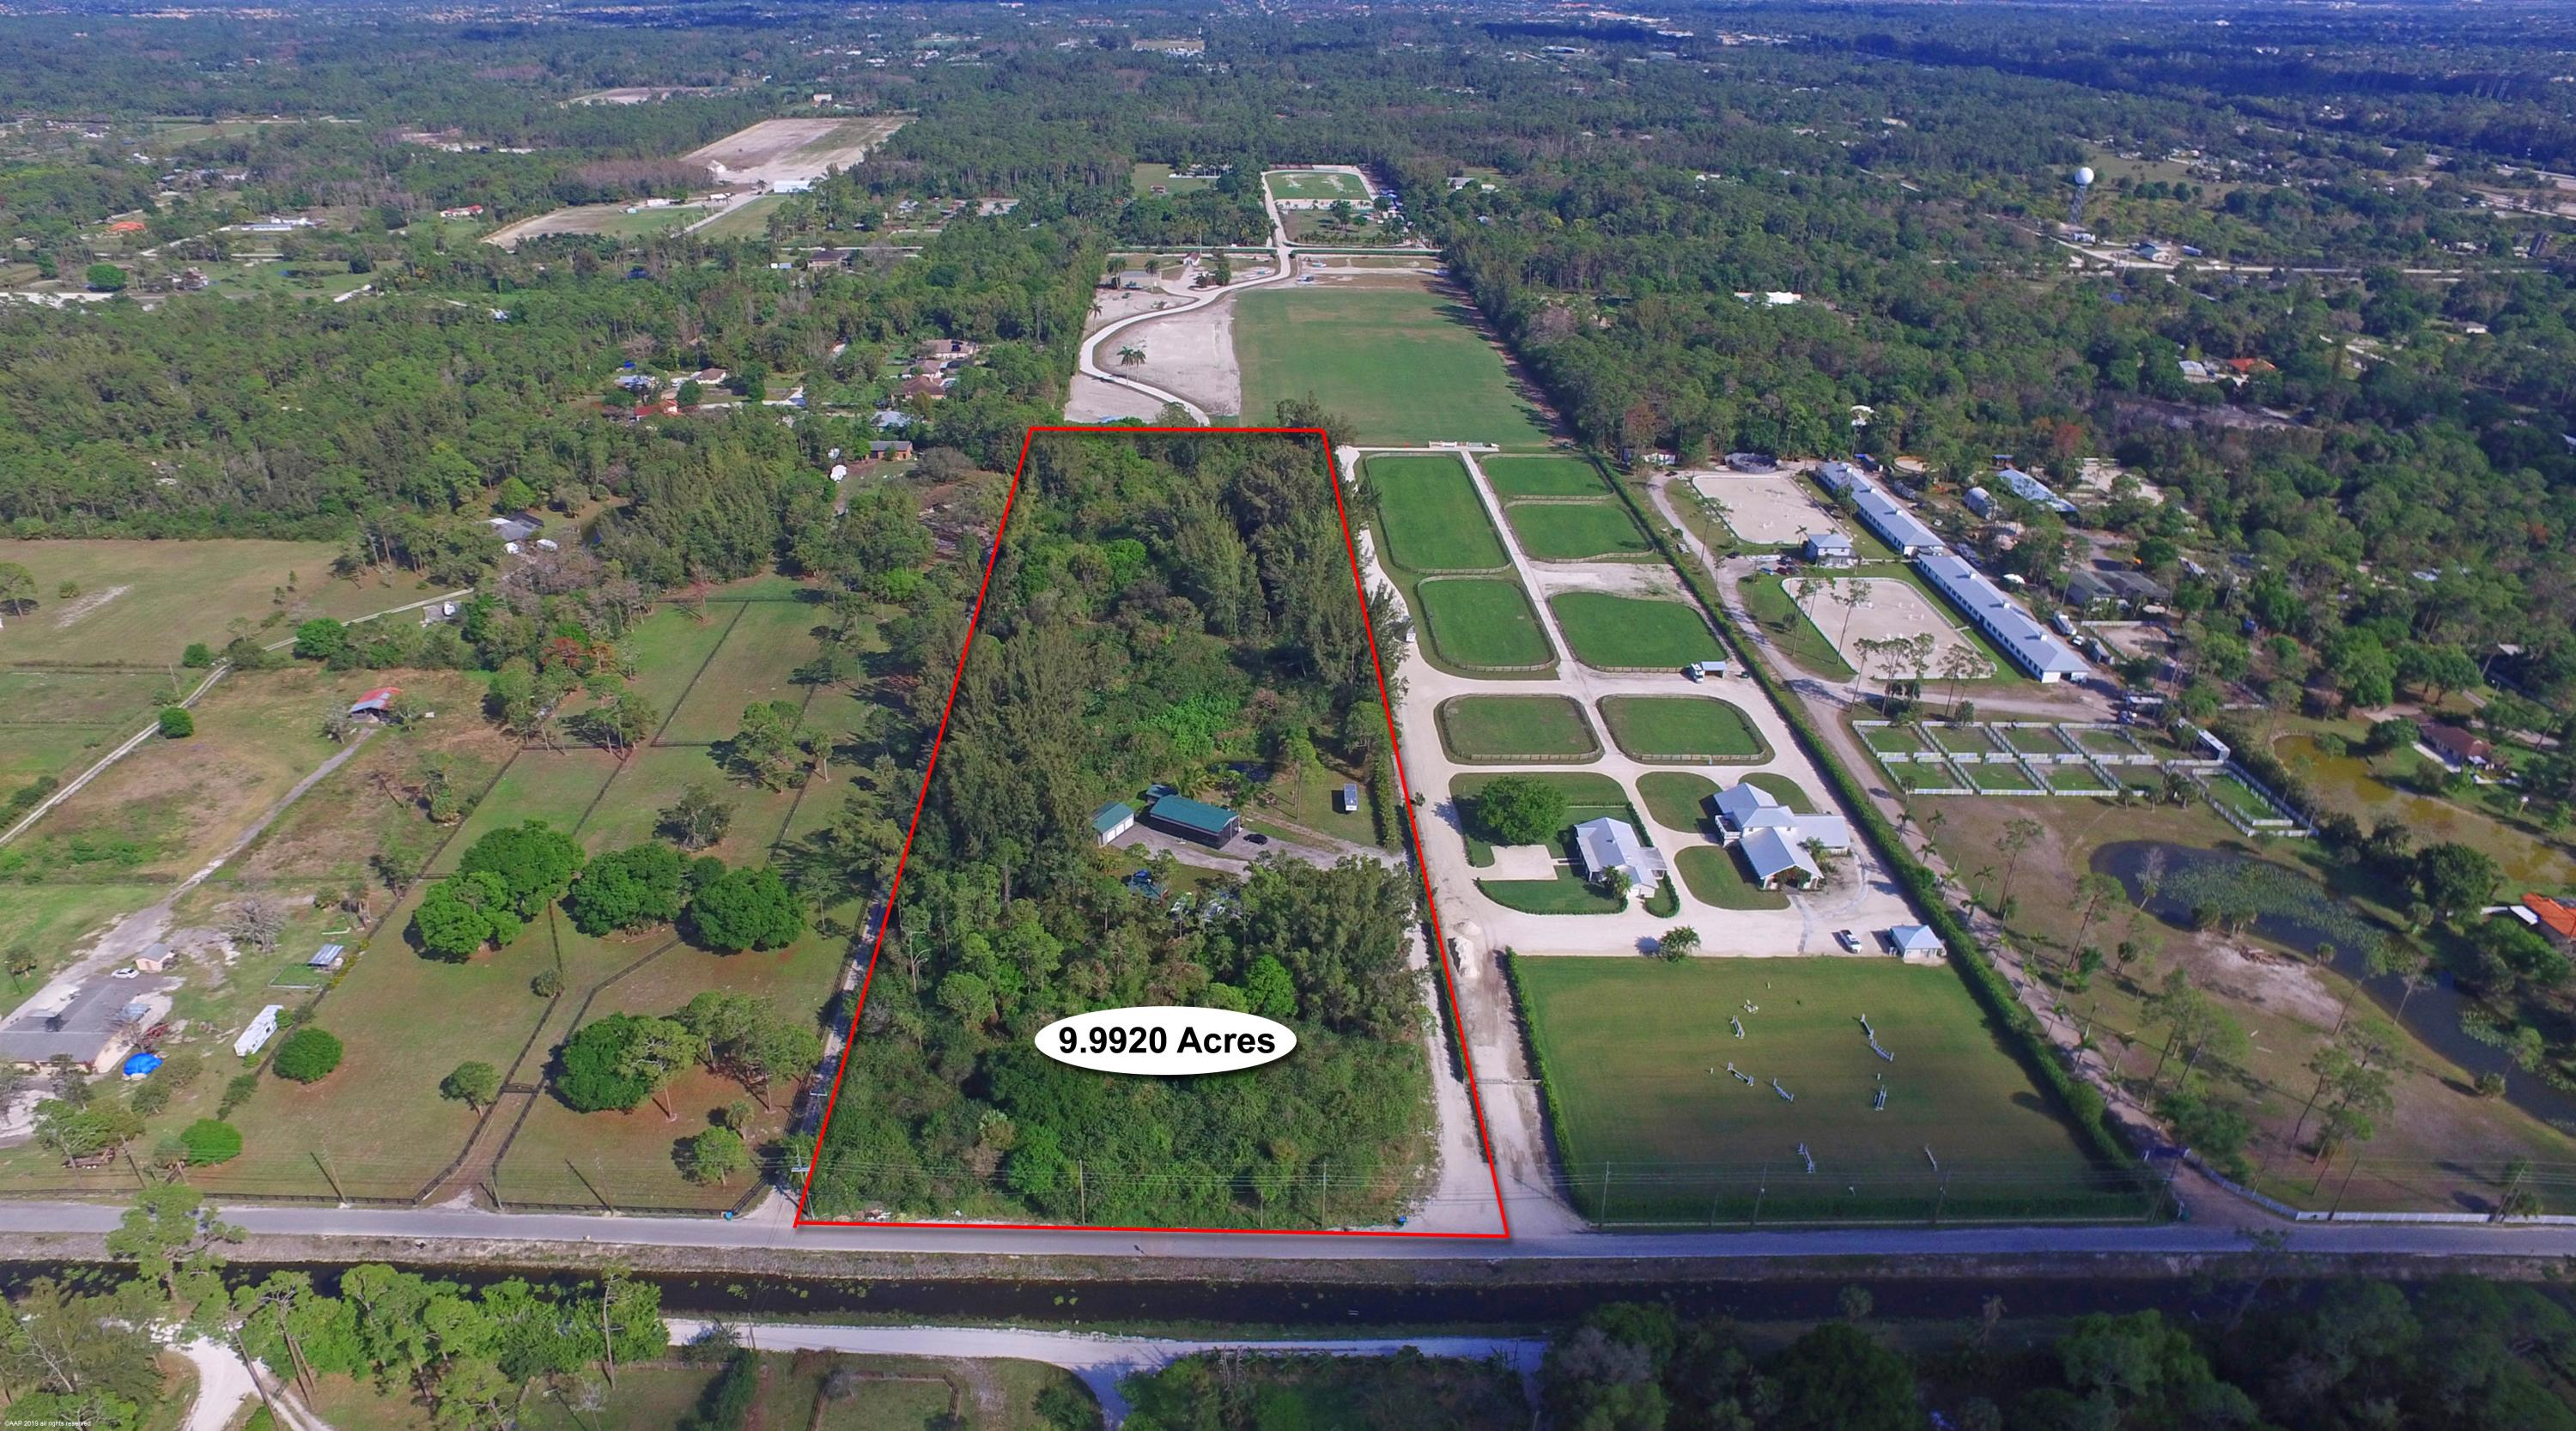 1032 C Road, Loxahatchee Groves, FL 33470